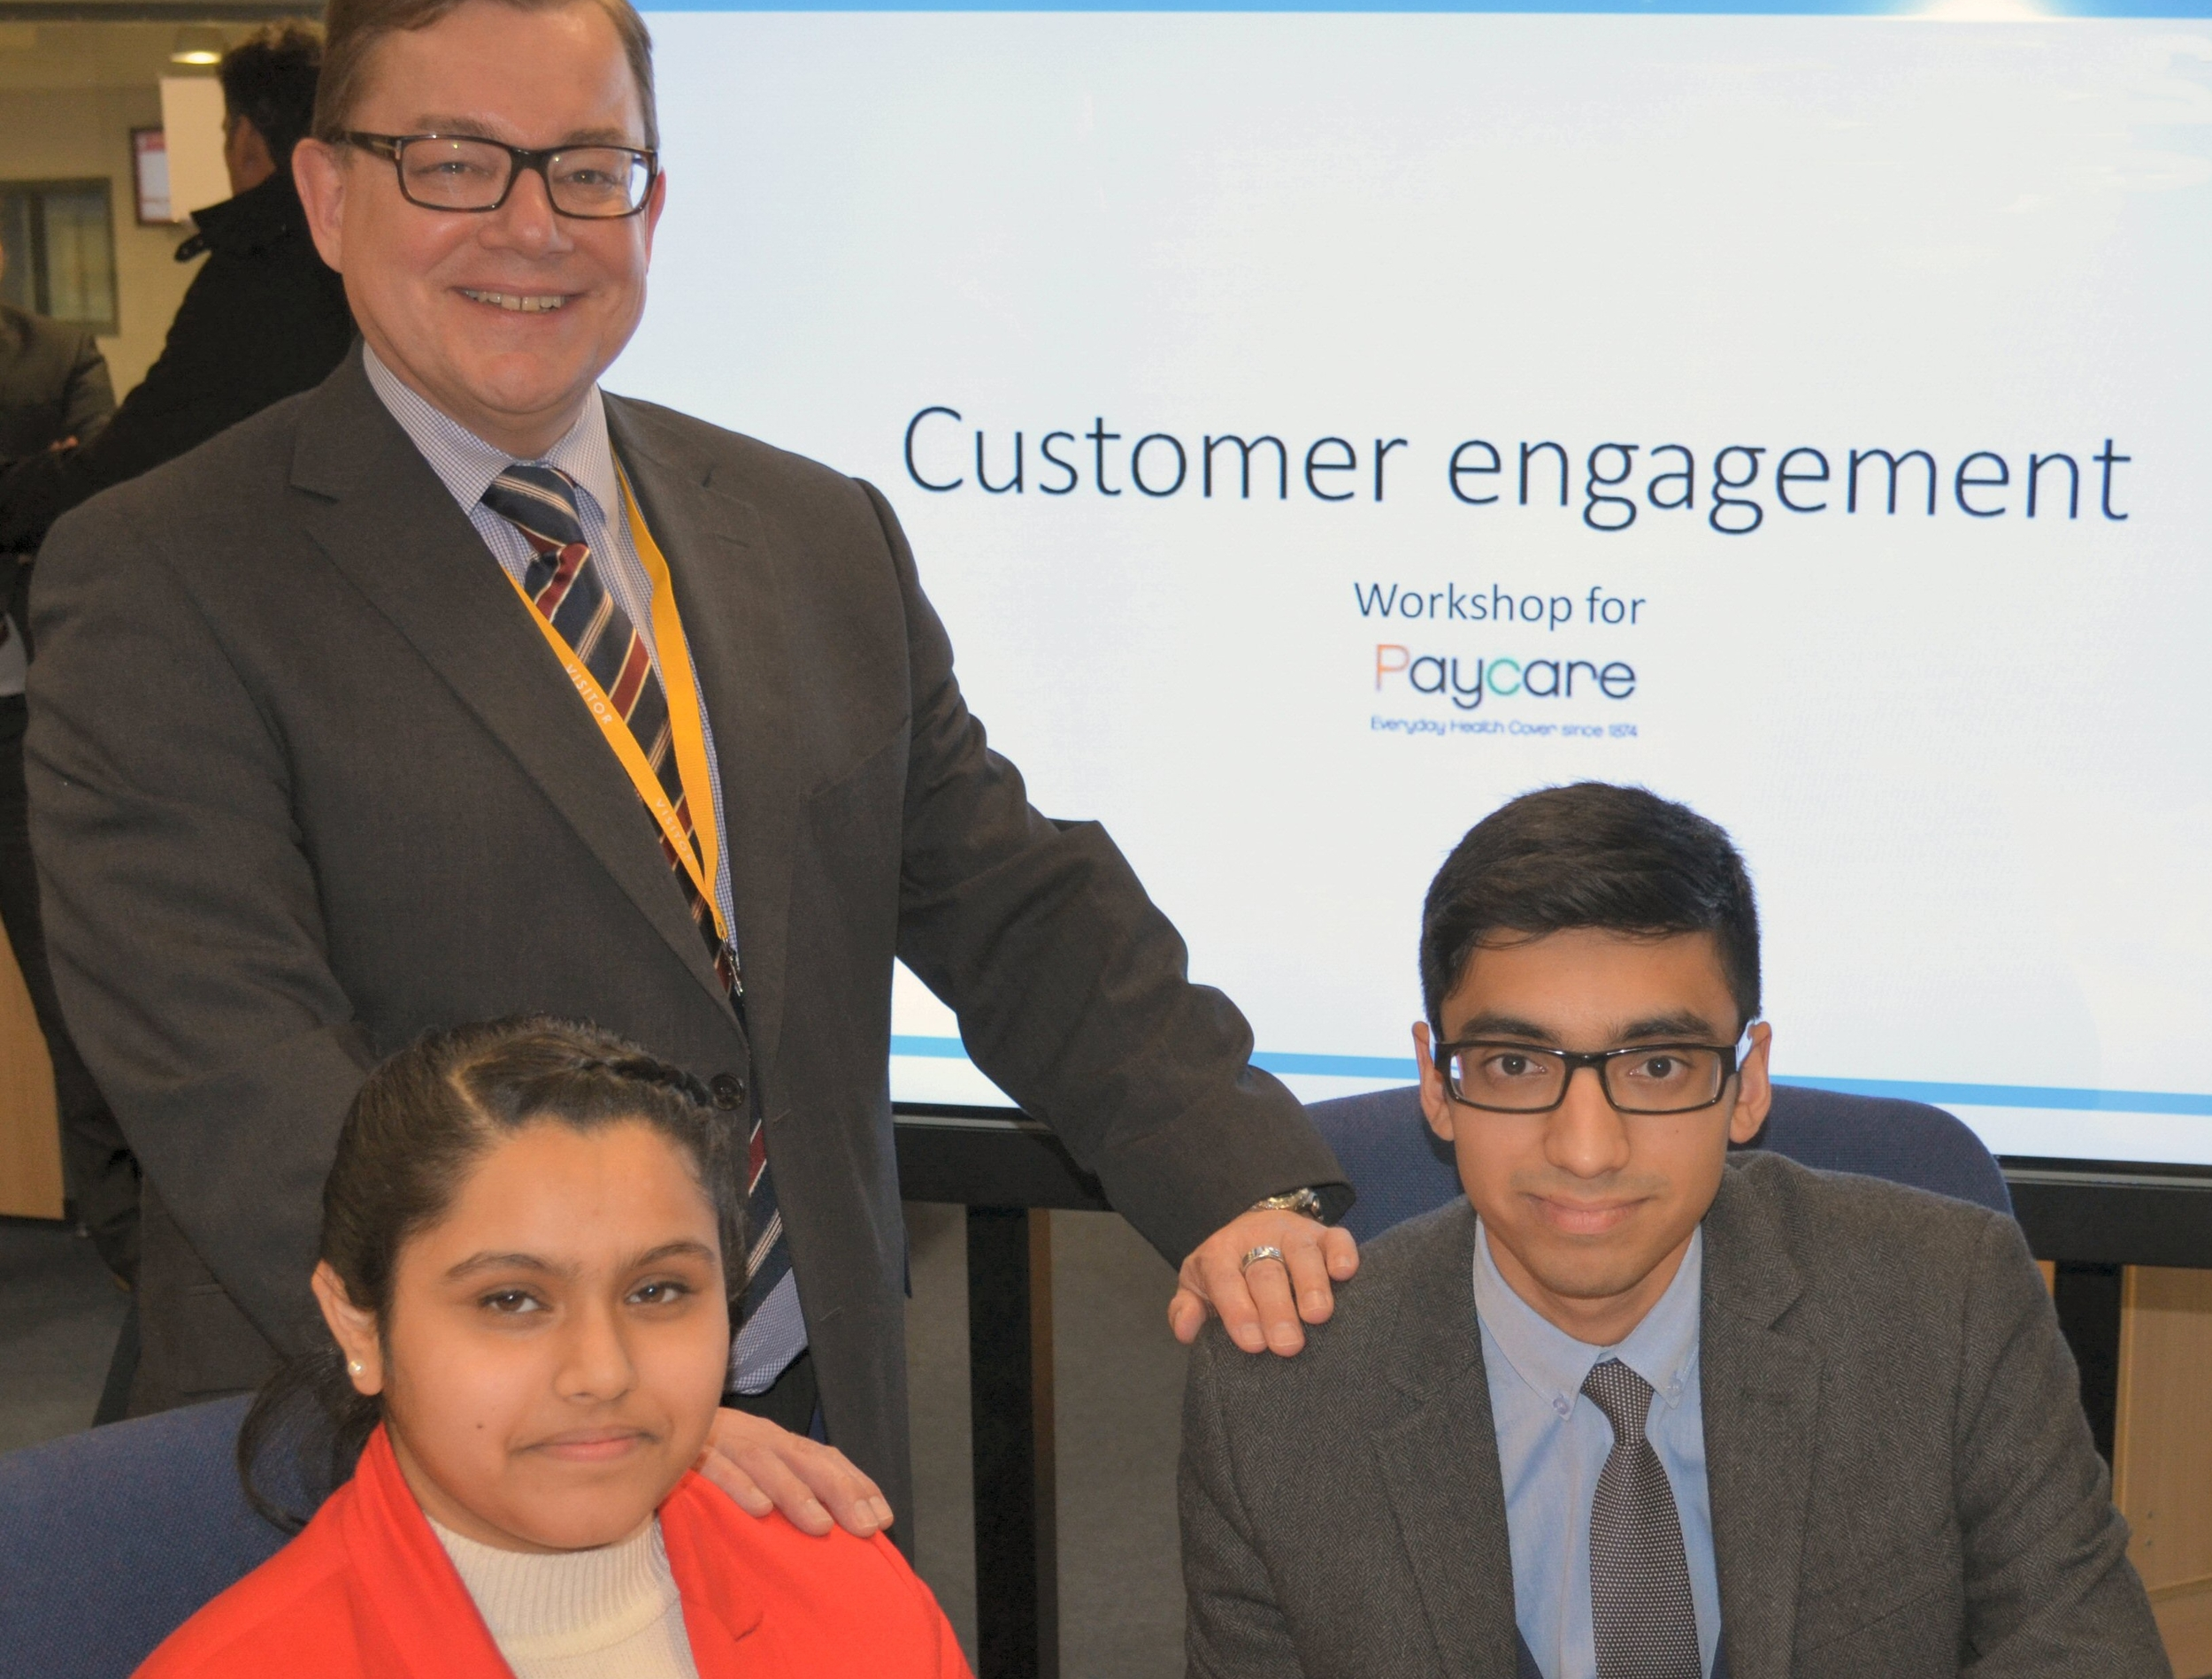 Year 13 Economic students Quais Khan and Amanjeet Maheru with Paycare chief executive, Kevin Rogers.